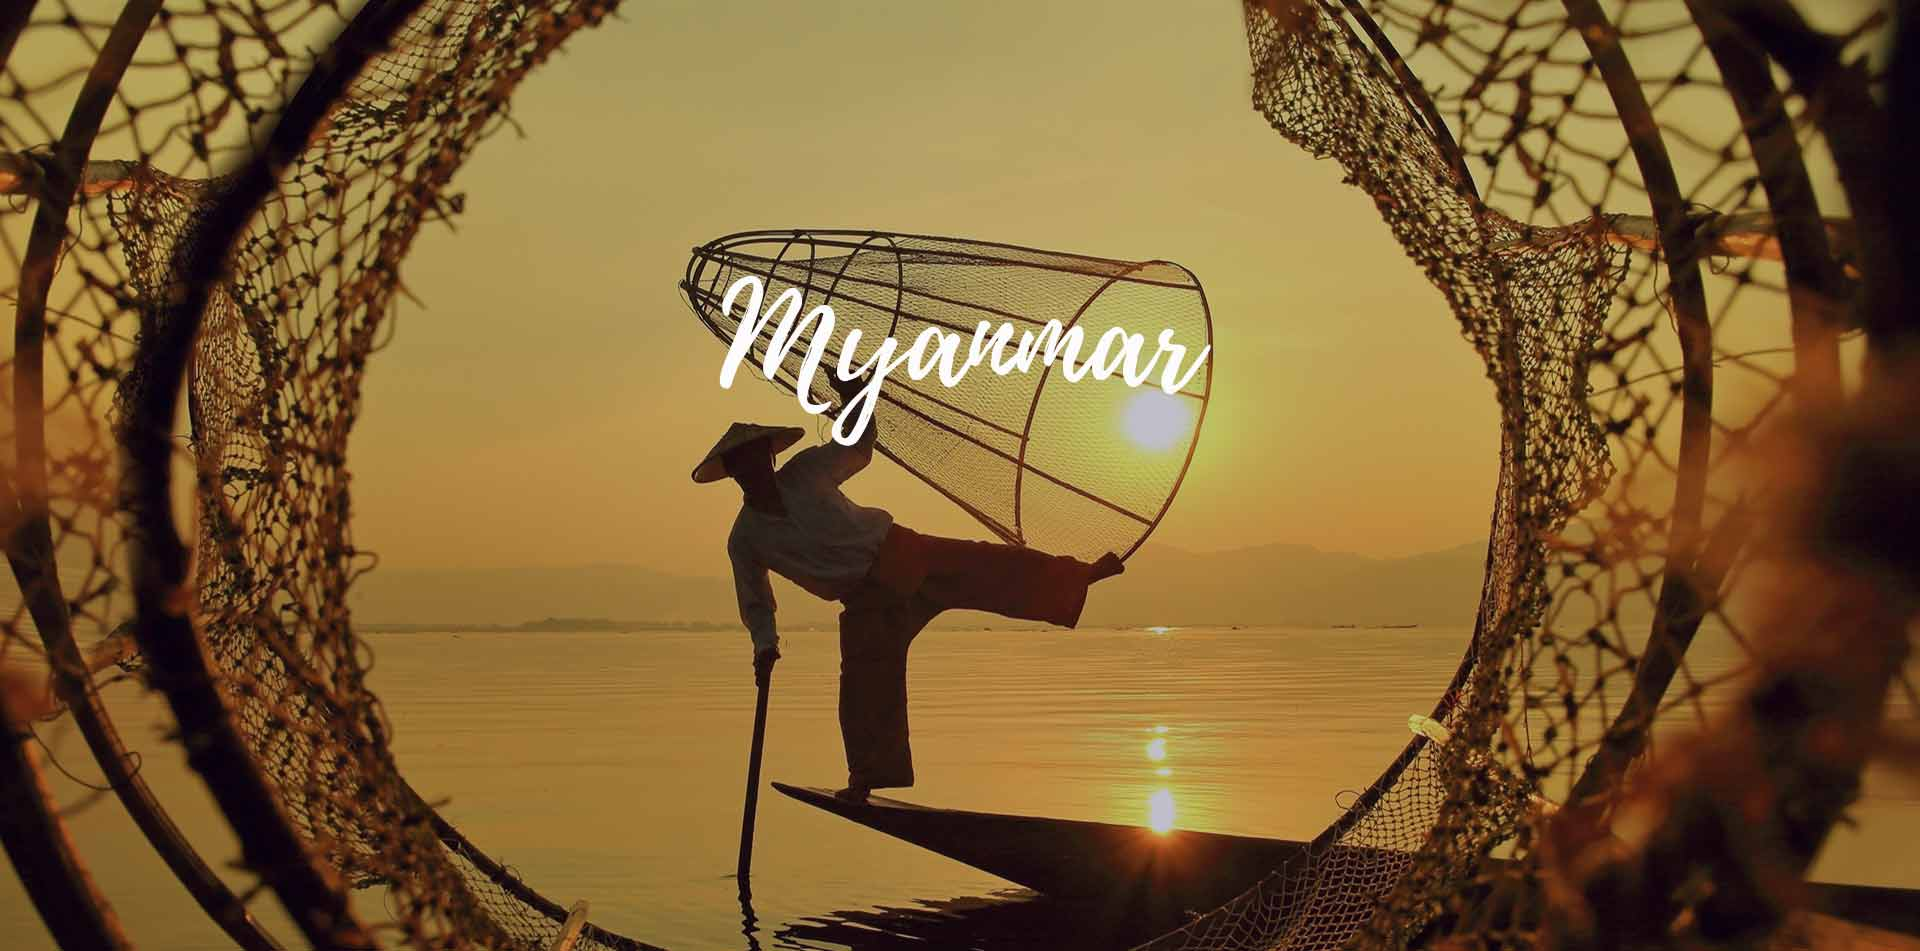 Asia Myanmar local fisherman balancing on boat with fishing net traps - luxury vacation destinations